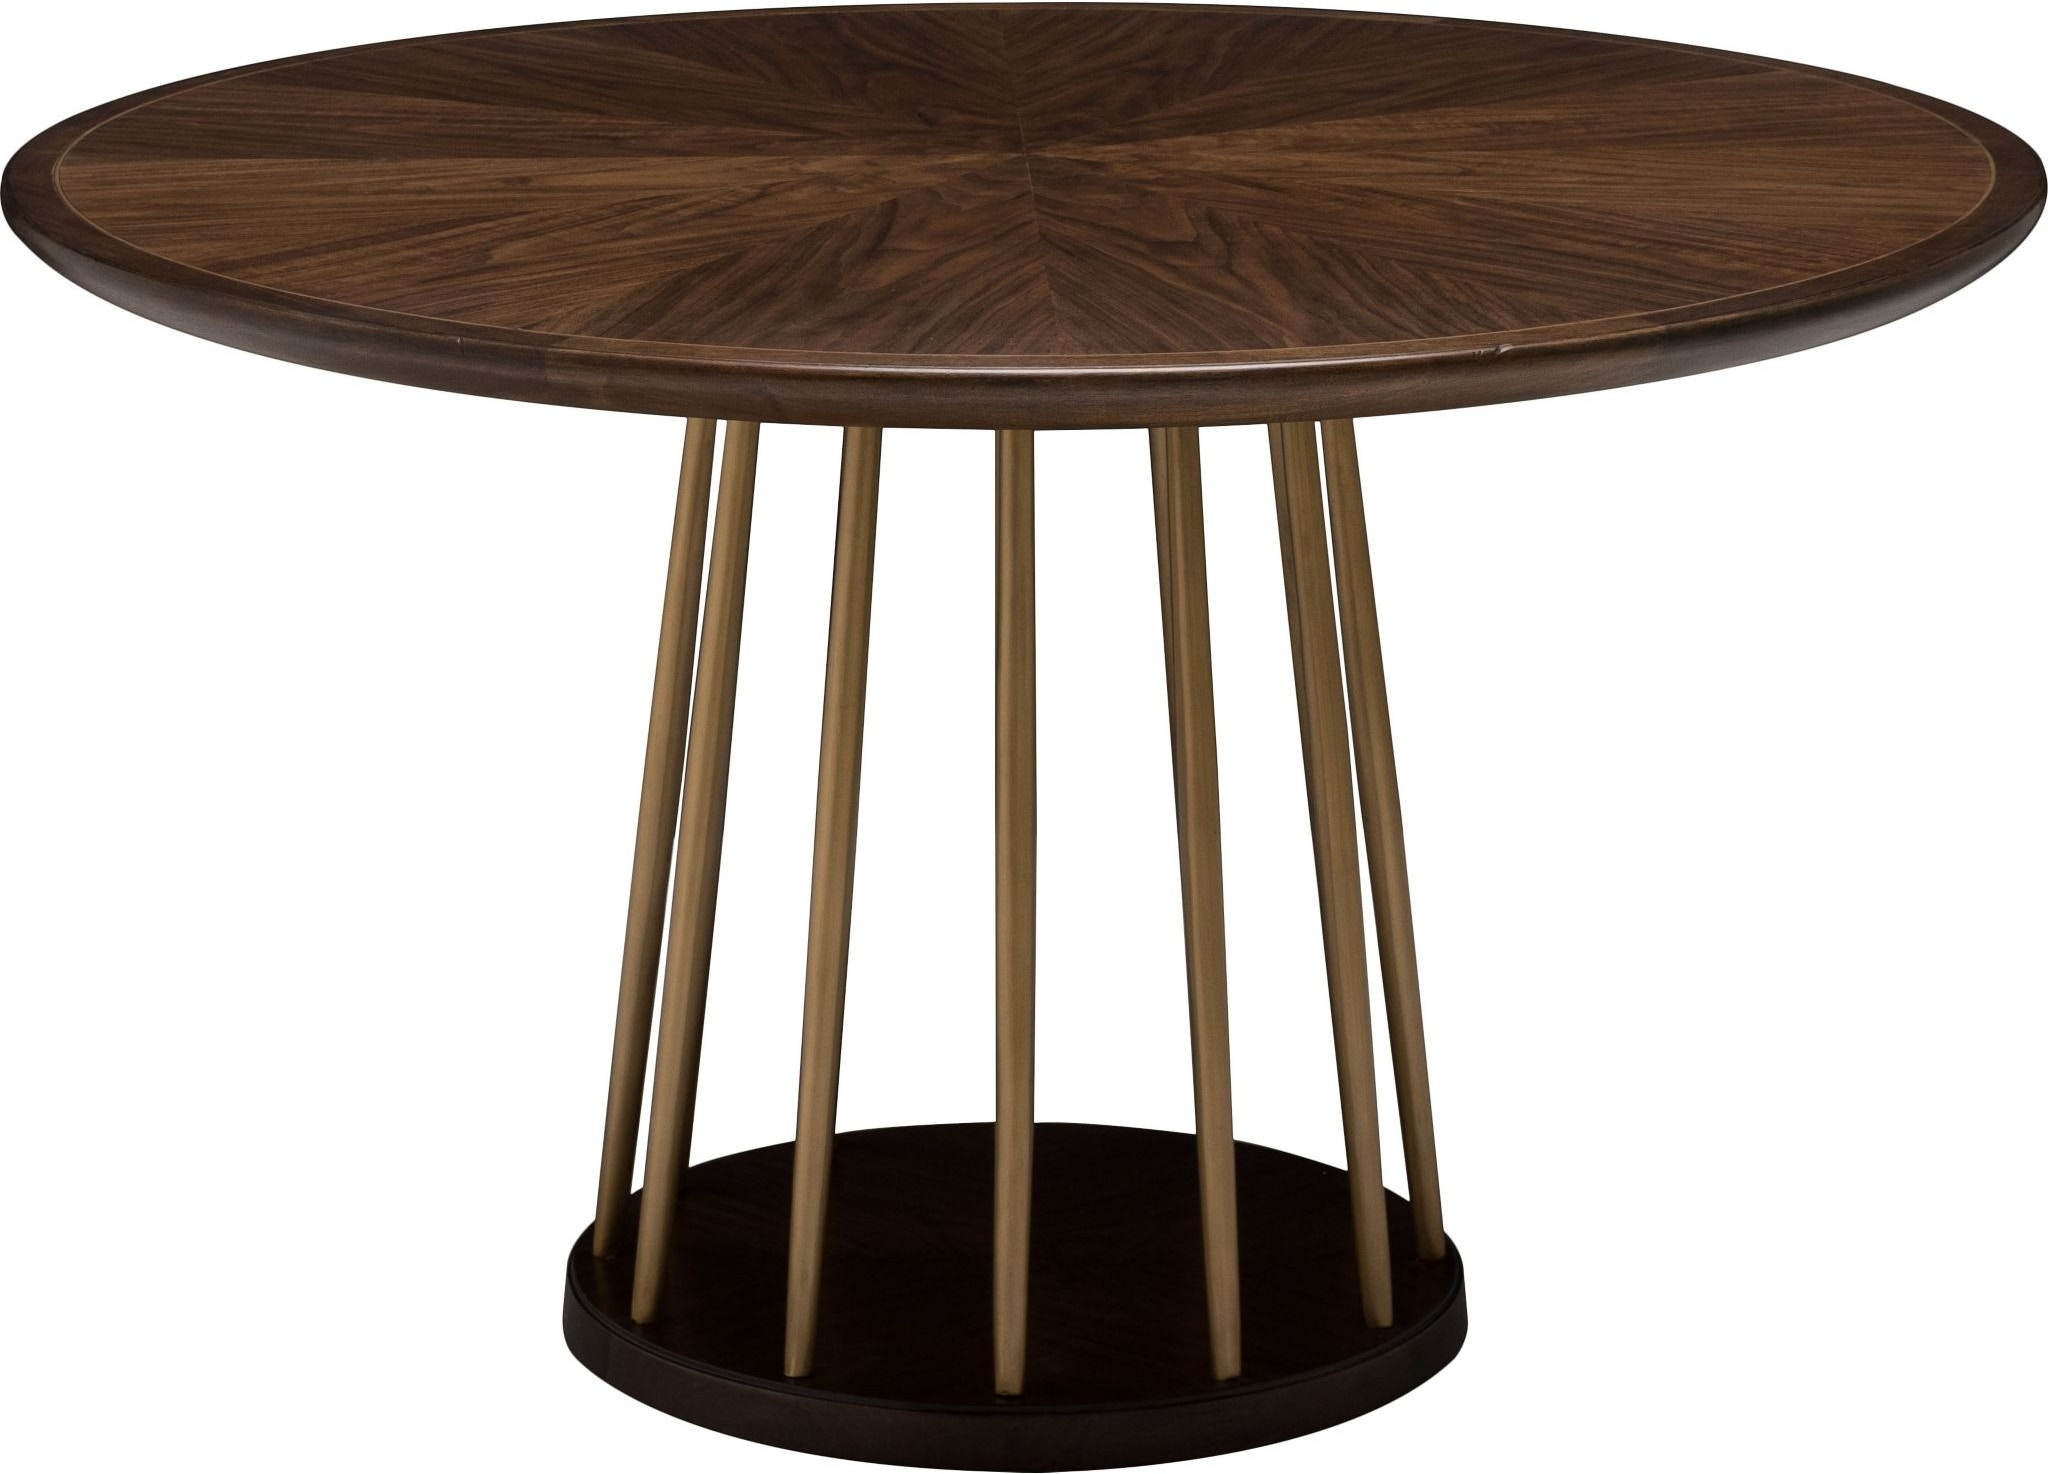 Thomasville Dining Room Lafitte Round Dining Table 85821  : 85821 720 from www.merinosfurniture.com size 1024 x 768 jpeg 44kB